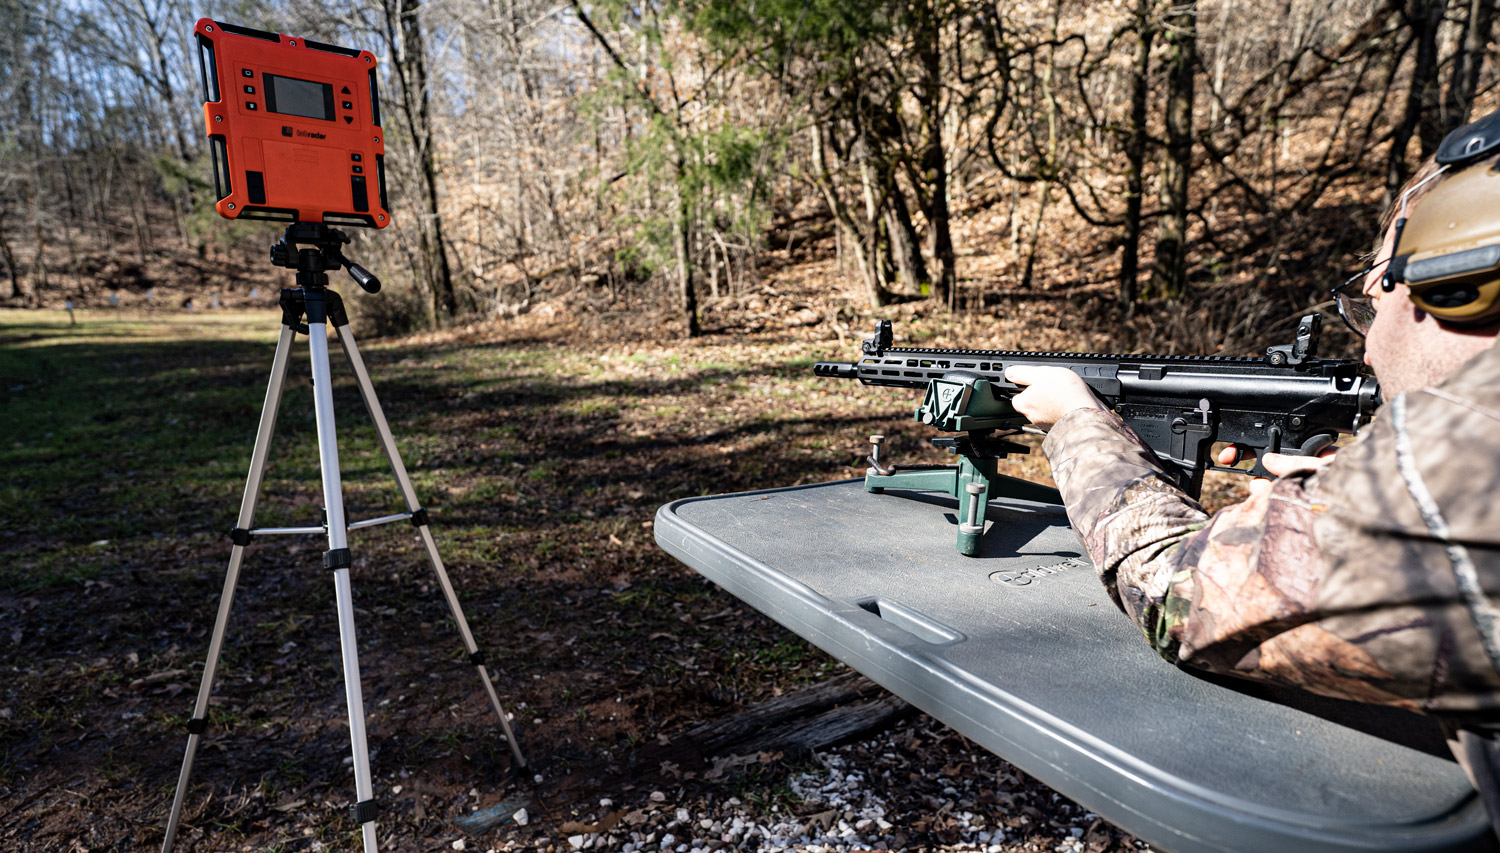 Measuring velocity of the 6.5 grendel vs 308 with a rifle at a shooting range